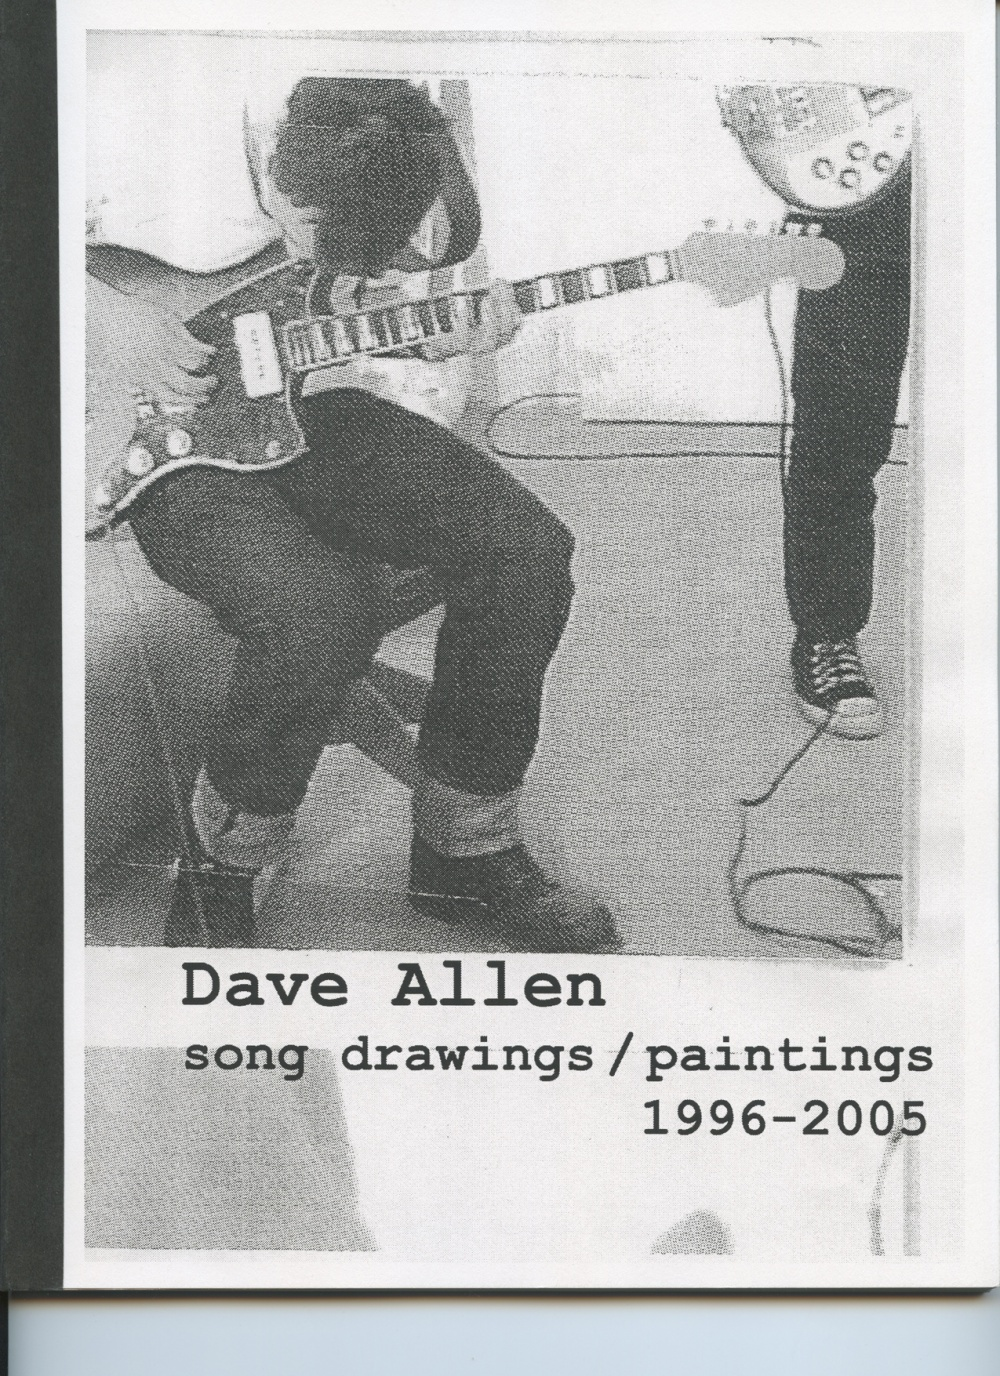 AMP0504 Song Drawings/ Paintings 1996-2005, Dave Allen